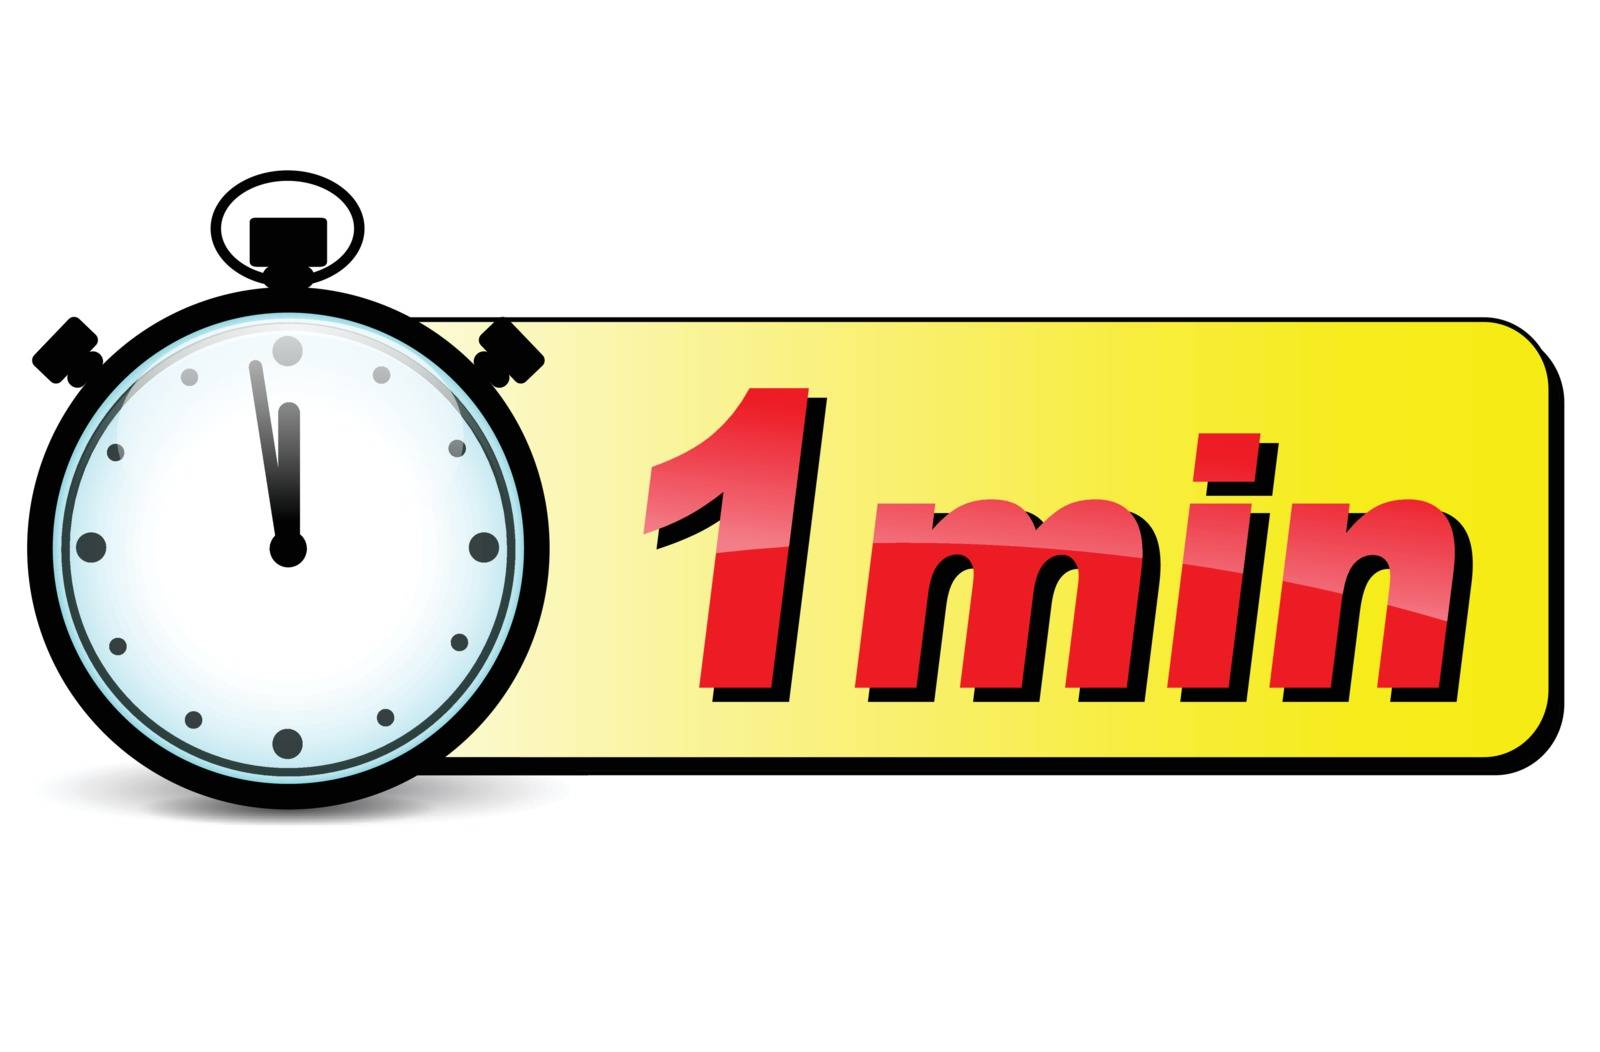 illustration of one minute stopwatch design icon